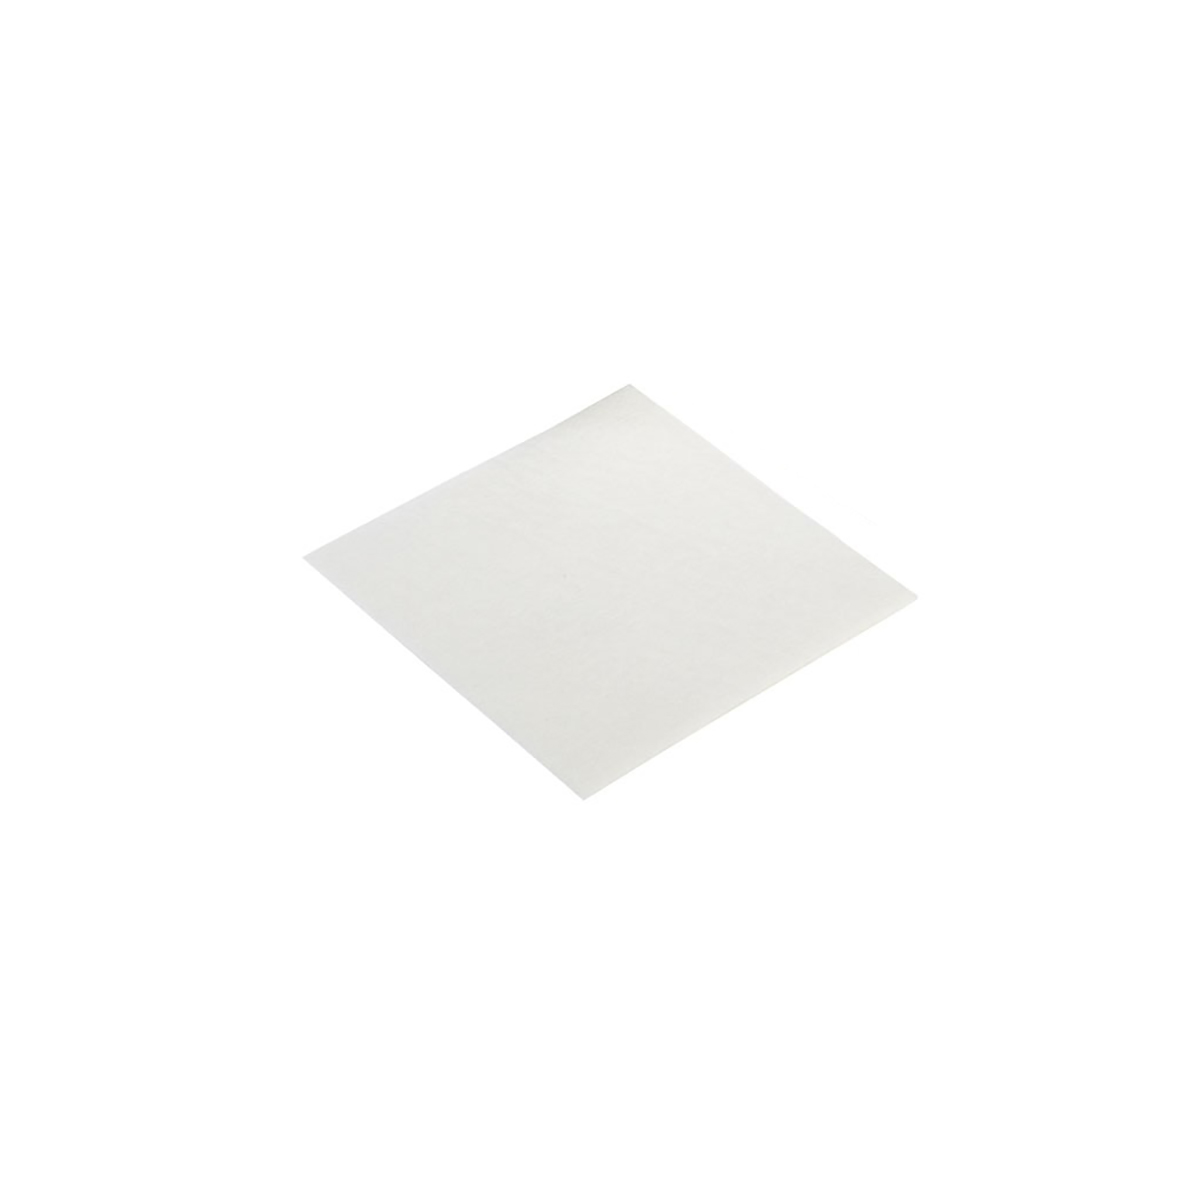 1 x Low-adherent absorbent dressing pad 7.5 x 7.5cm